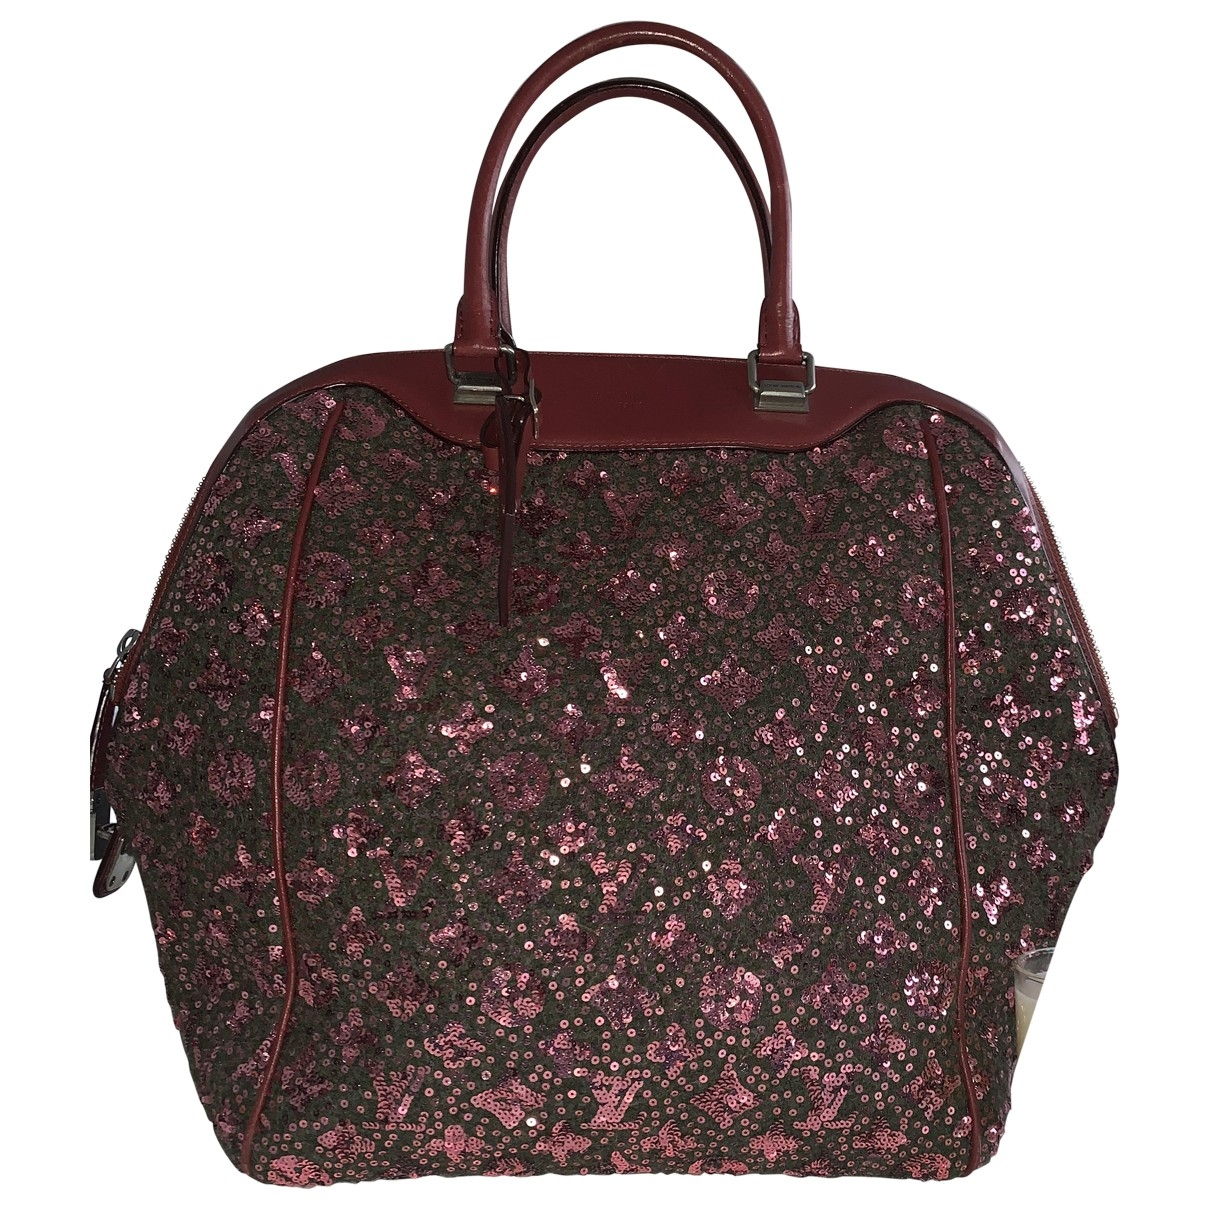 Louis Vuitton \N Burgundy Glitter handbag for Women \N